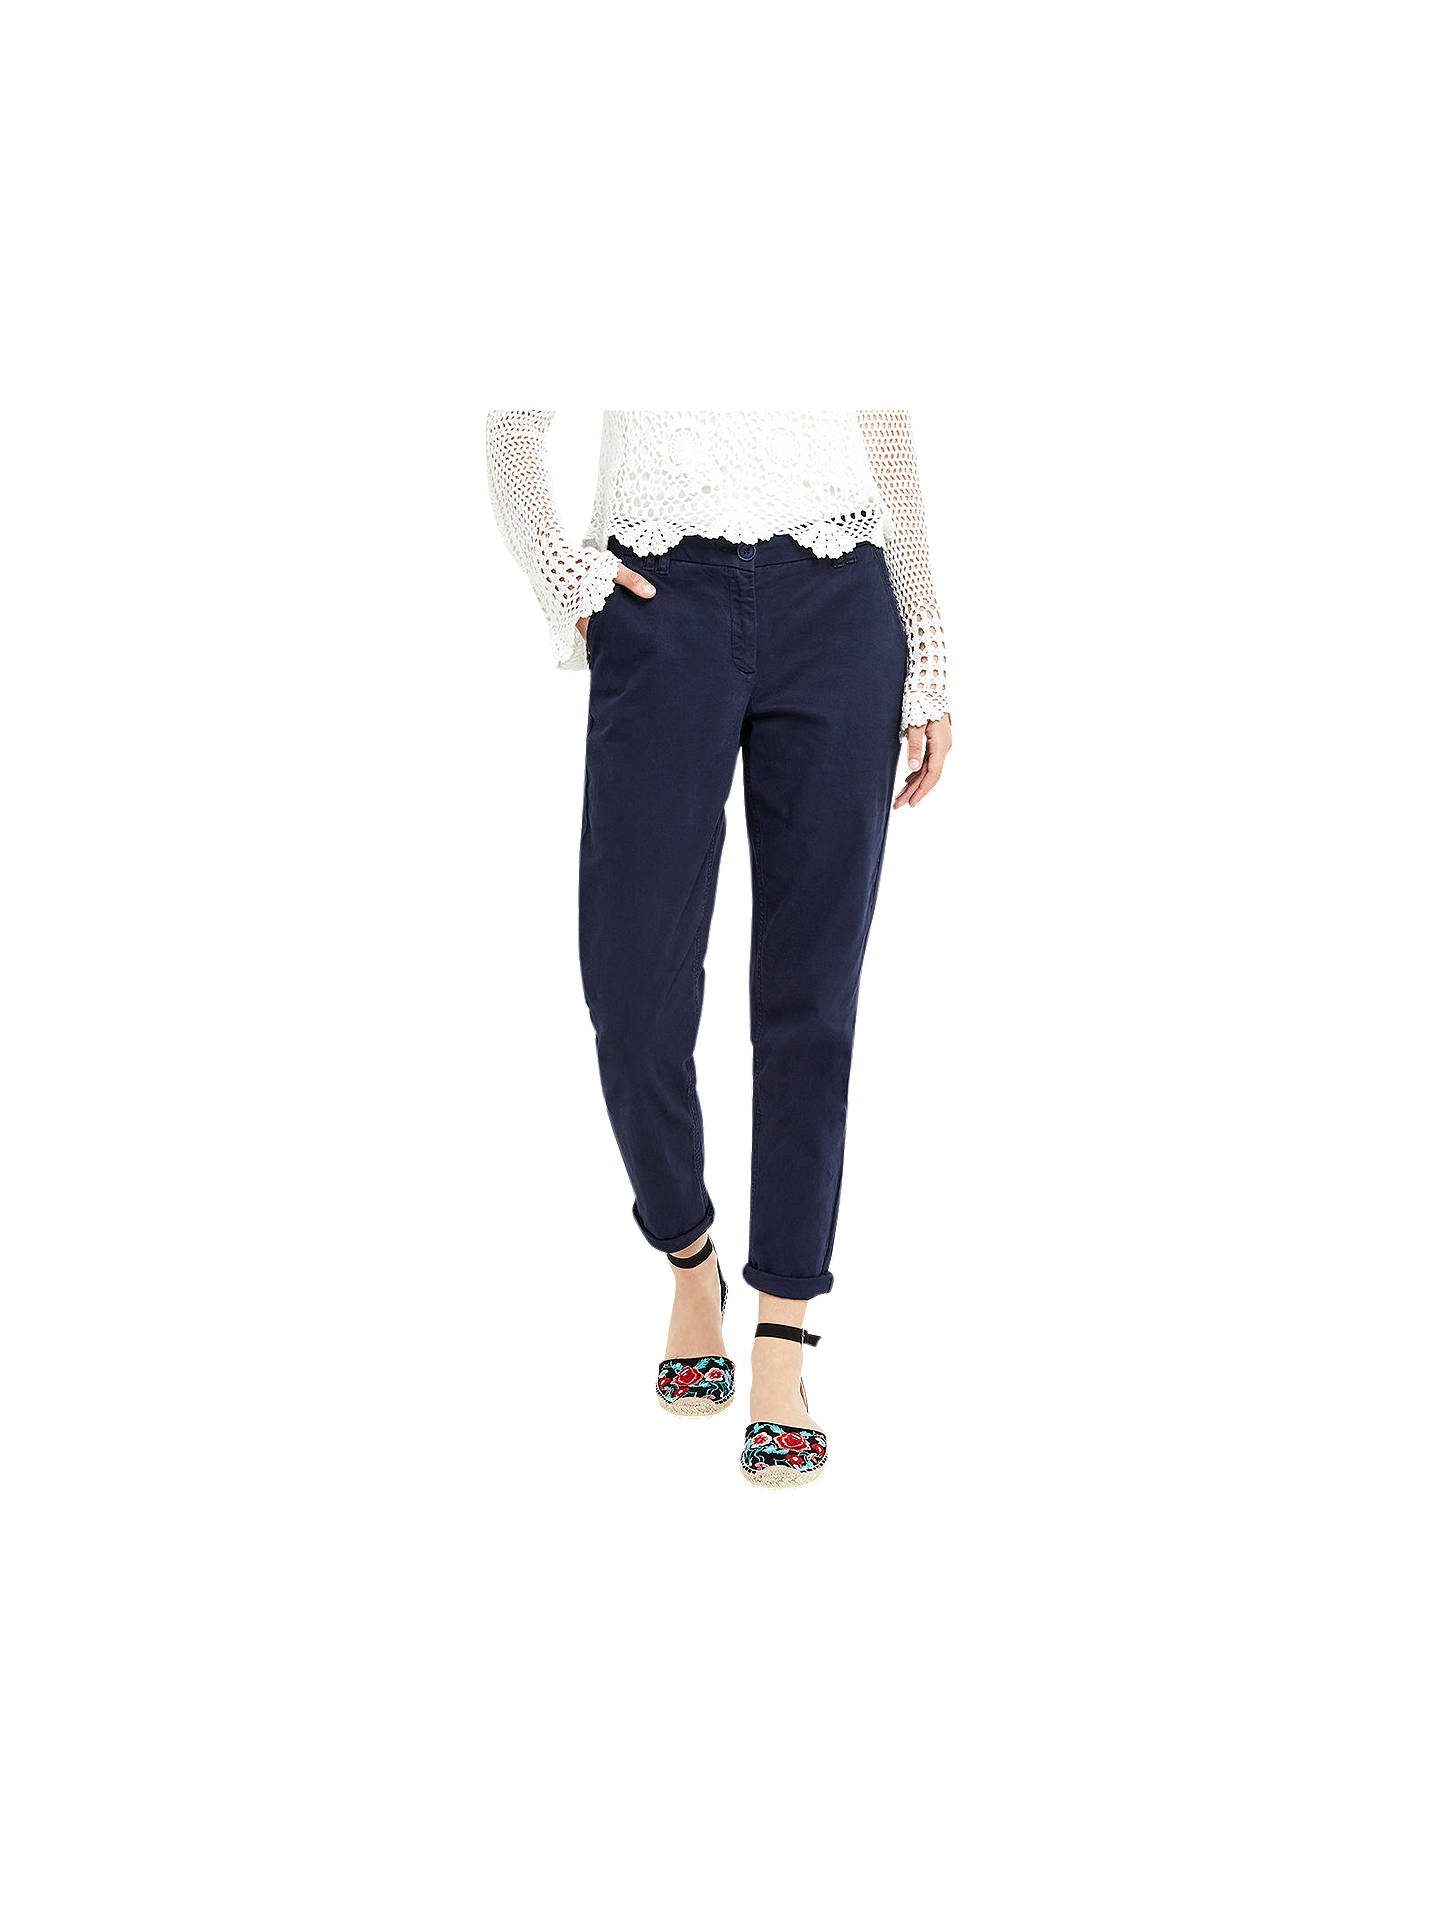 BuyOasis Casual Cotton Chinos, Navy, 6 Online at johnlewis.com